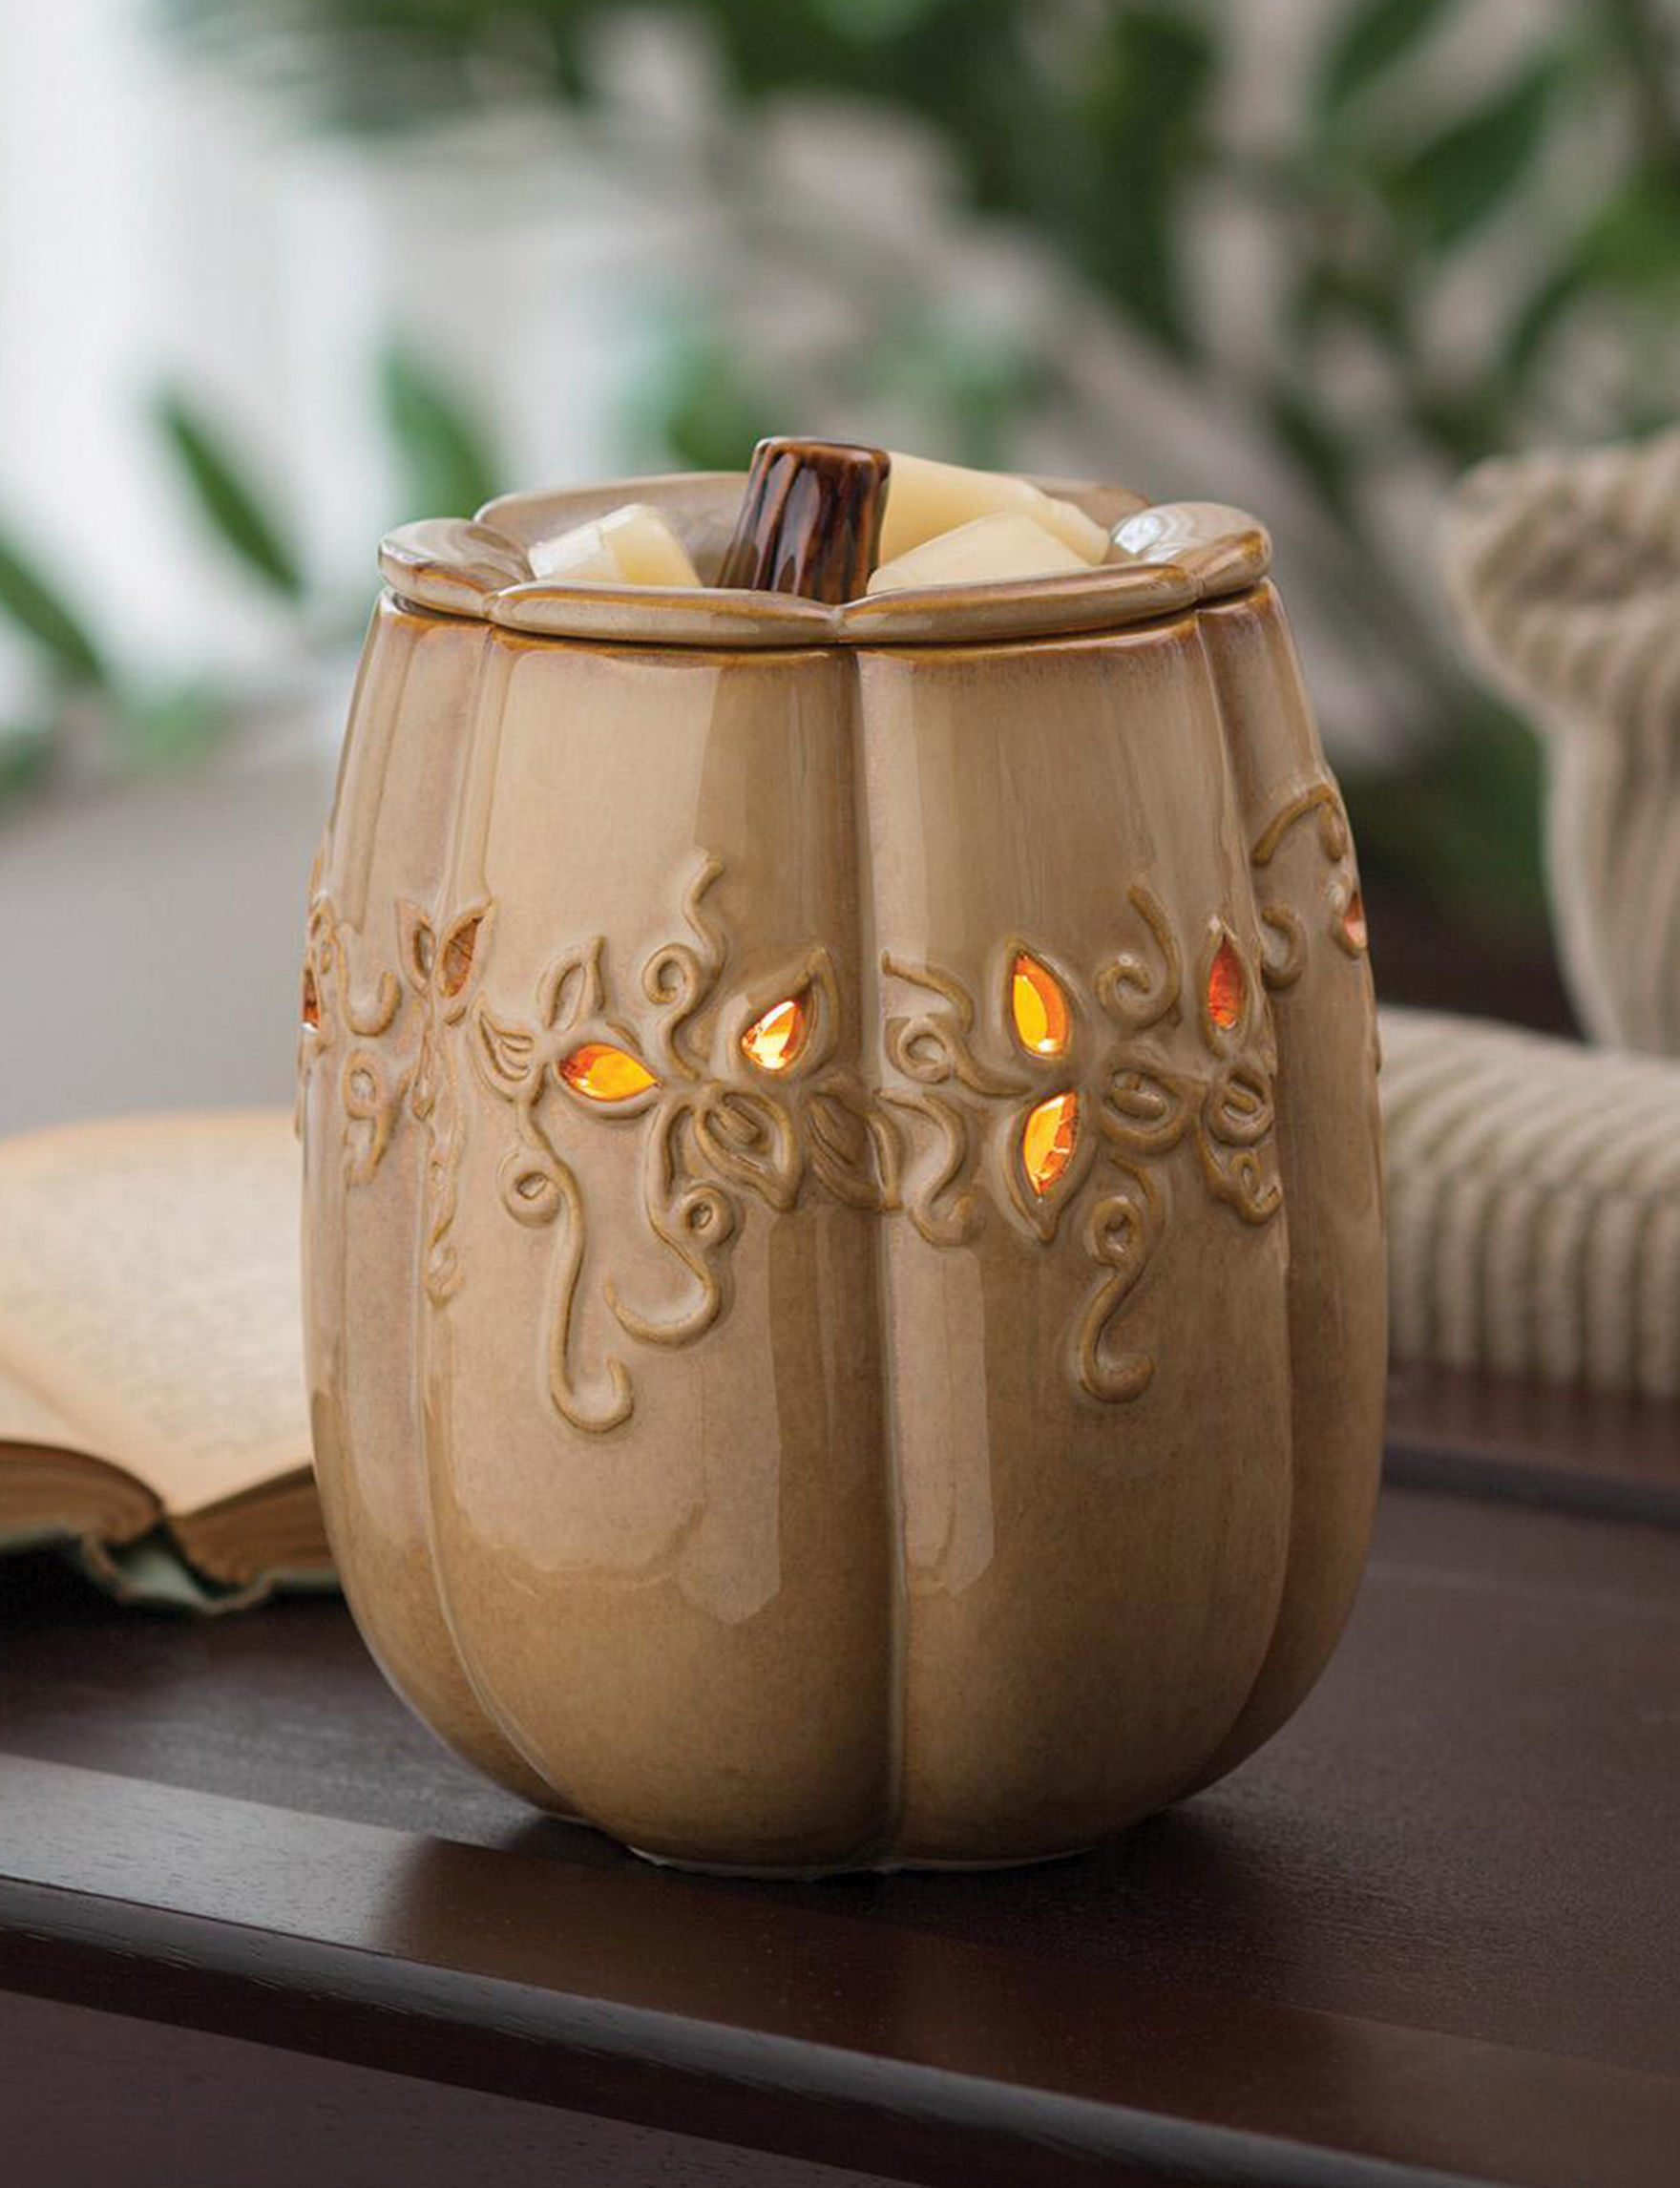 Candle Warmers  Warmers & Plug Ins Wax Melts & Oils Candles & Diffusers